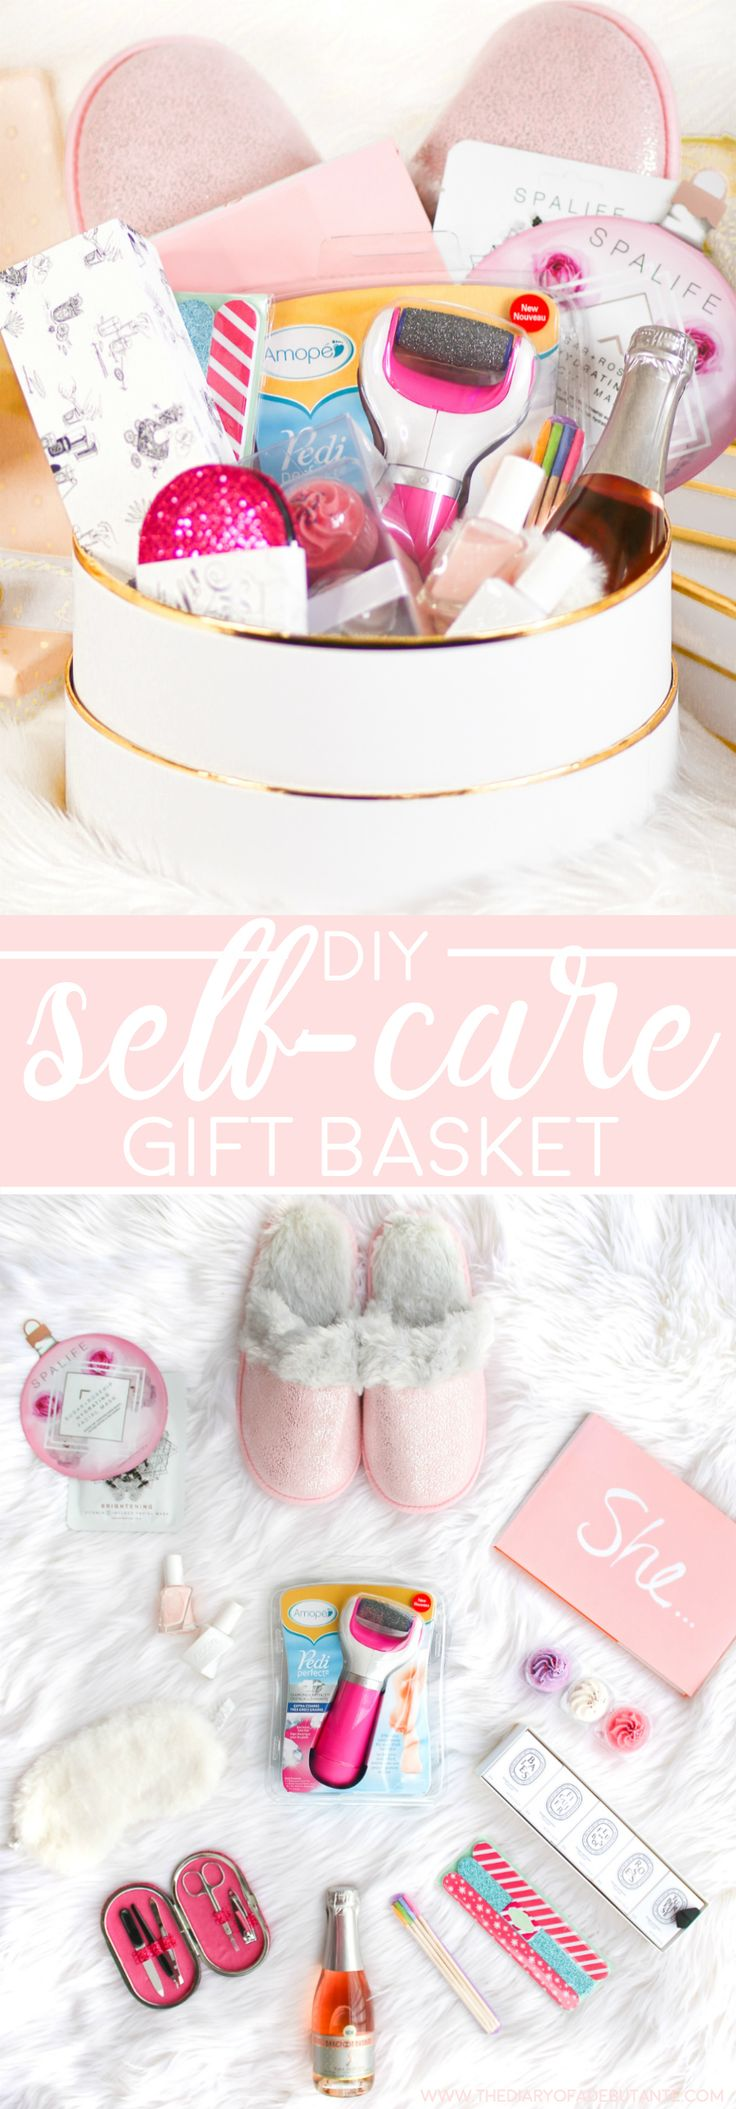 "DIY spa gift basket and 12 self-care gift ideas for anyone in need of some quality ""me"" time 